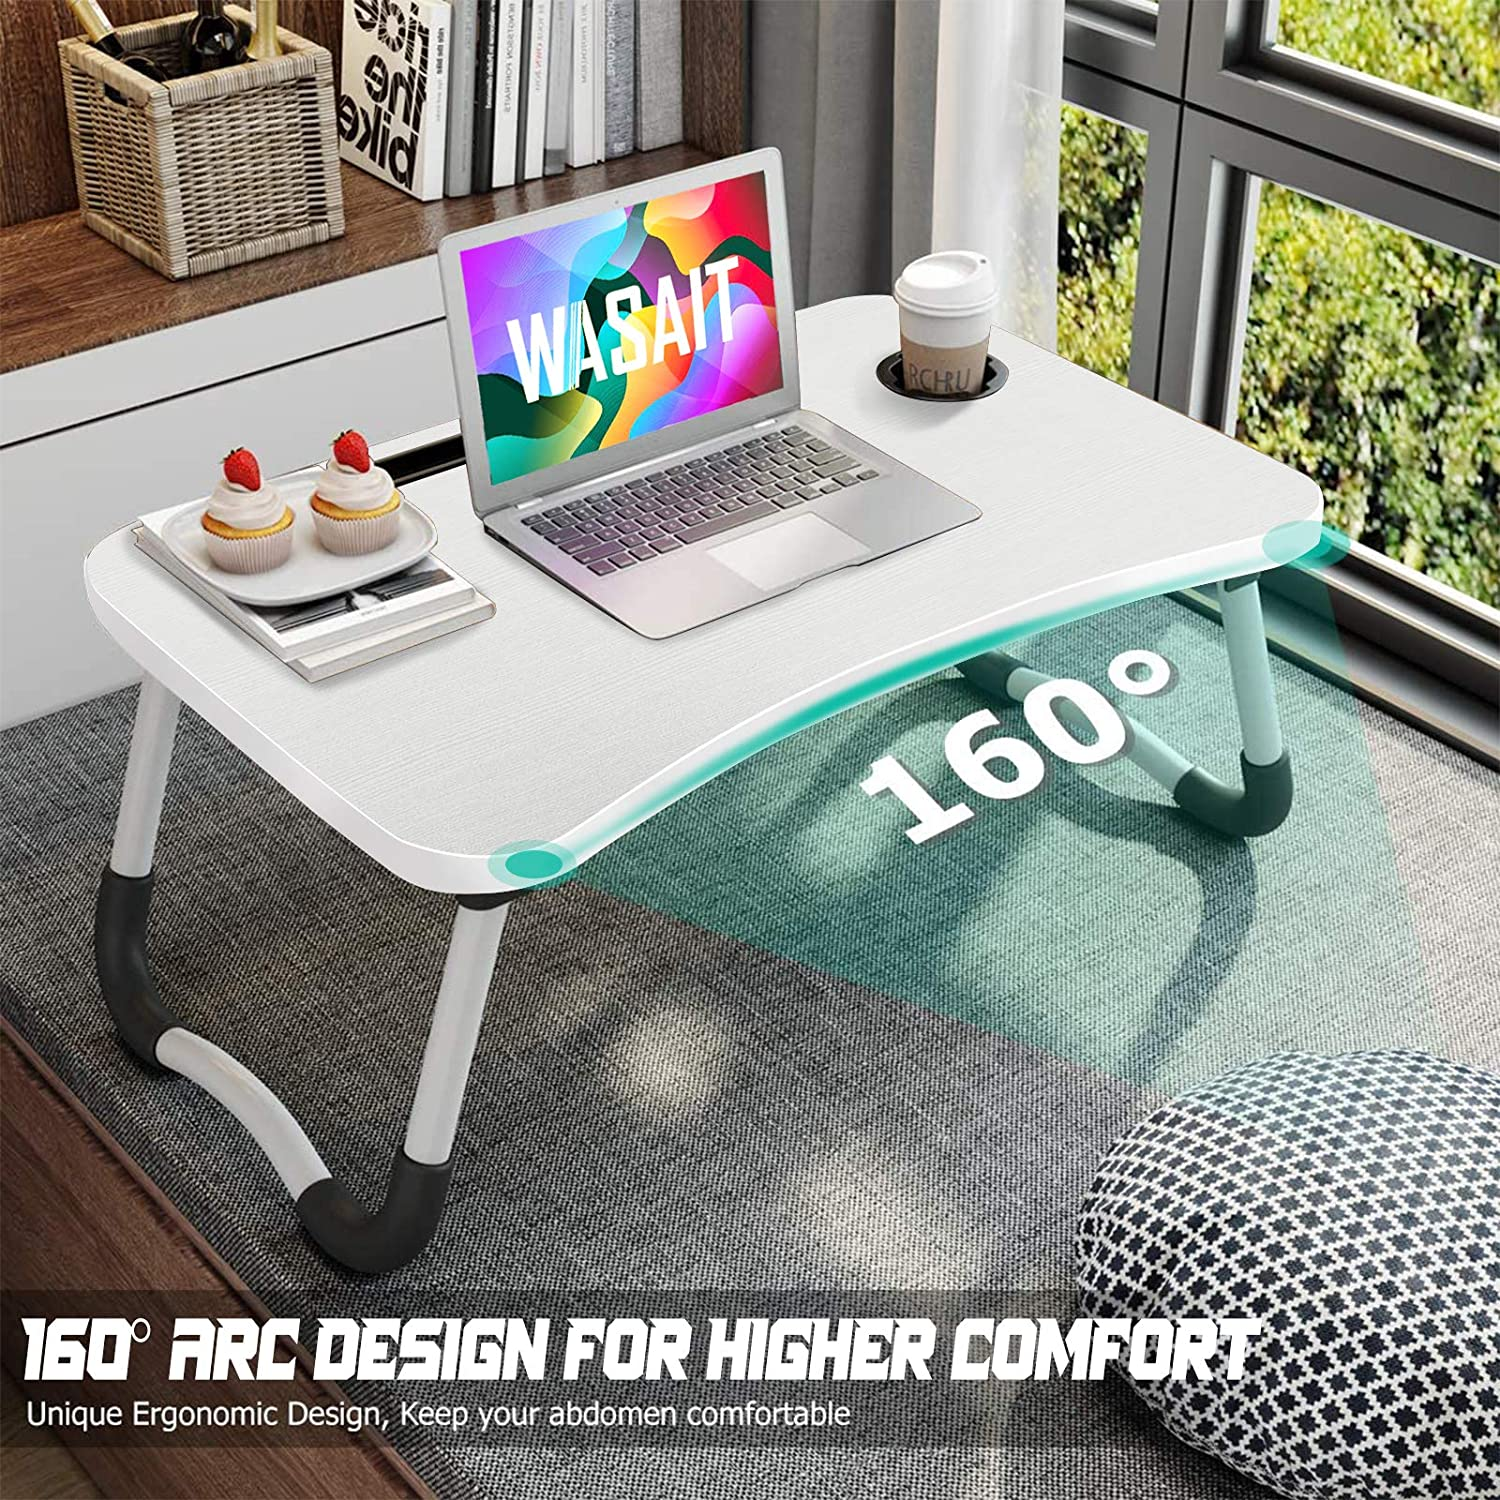 Black Foldable Bed Desk for Laptop Stand for Bed Folding Lap Desk Laptop Bed Tray Table for Eating and Laptops Portable Workstation Desk Floor Tray with Cup Holder for Sofa Couch Writing Reading